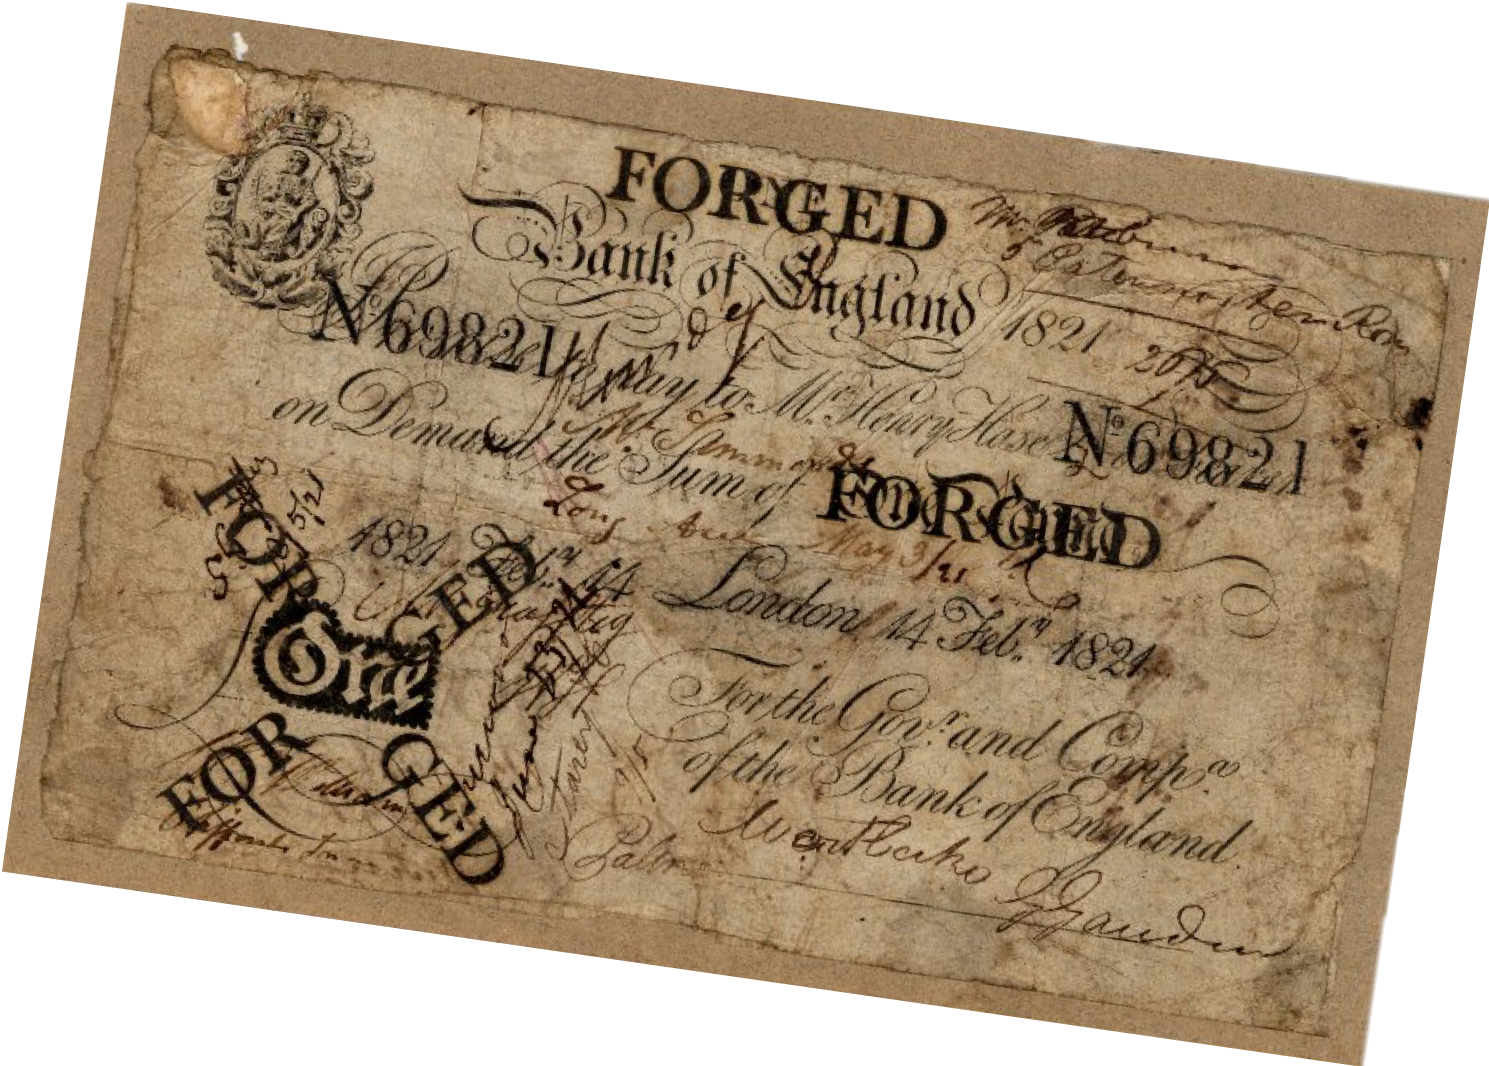 Forgery, Bank of England, Bank Note, 1 pound, Counterfeit, St. John's Cemetery Project, Old Parramattans, Sarah Moses, Tell the World I Died for Love, Died of Broken Heart